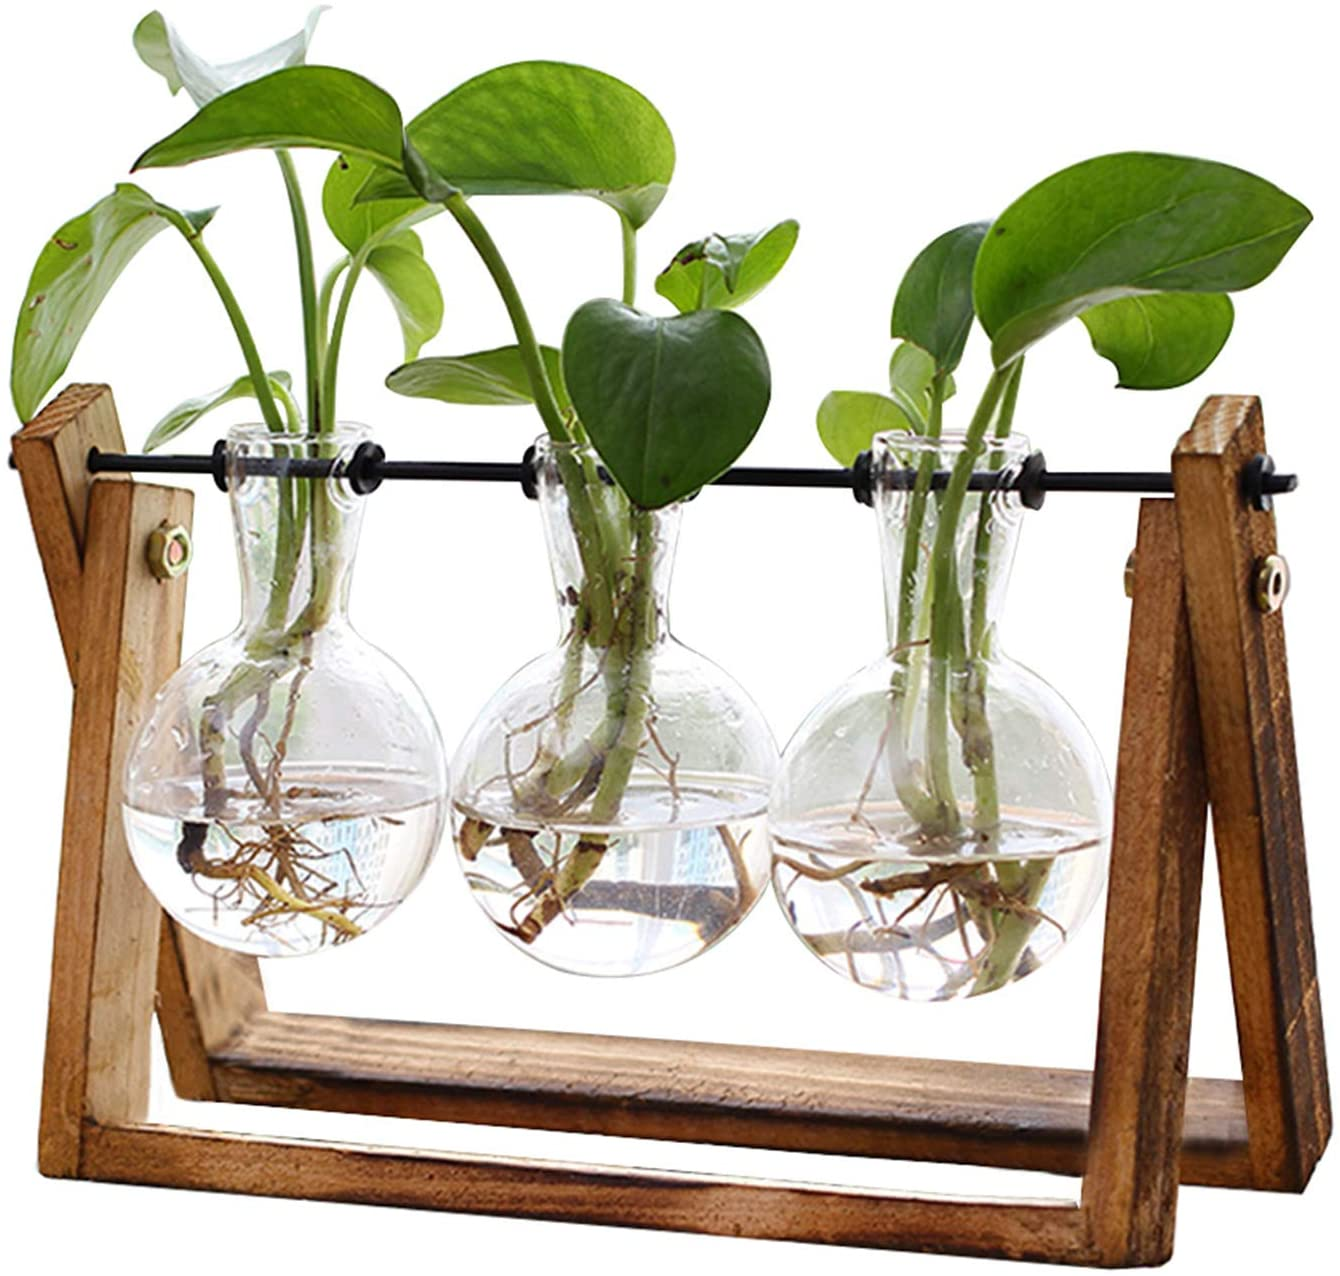 Propogation Jars